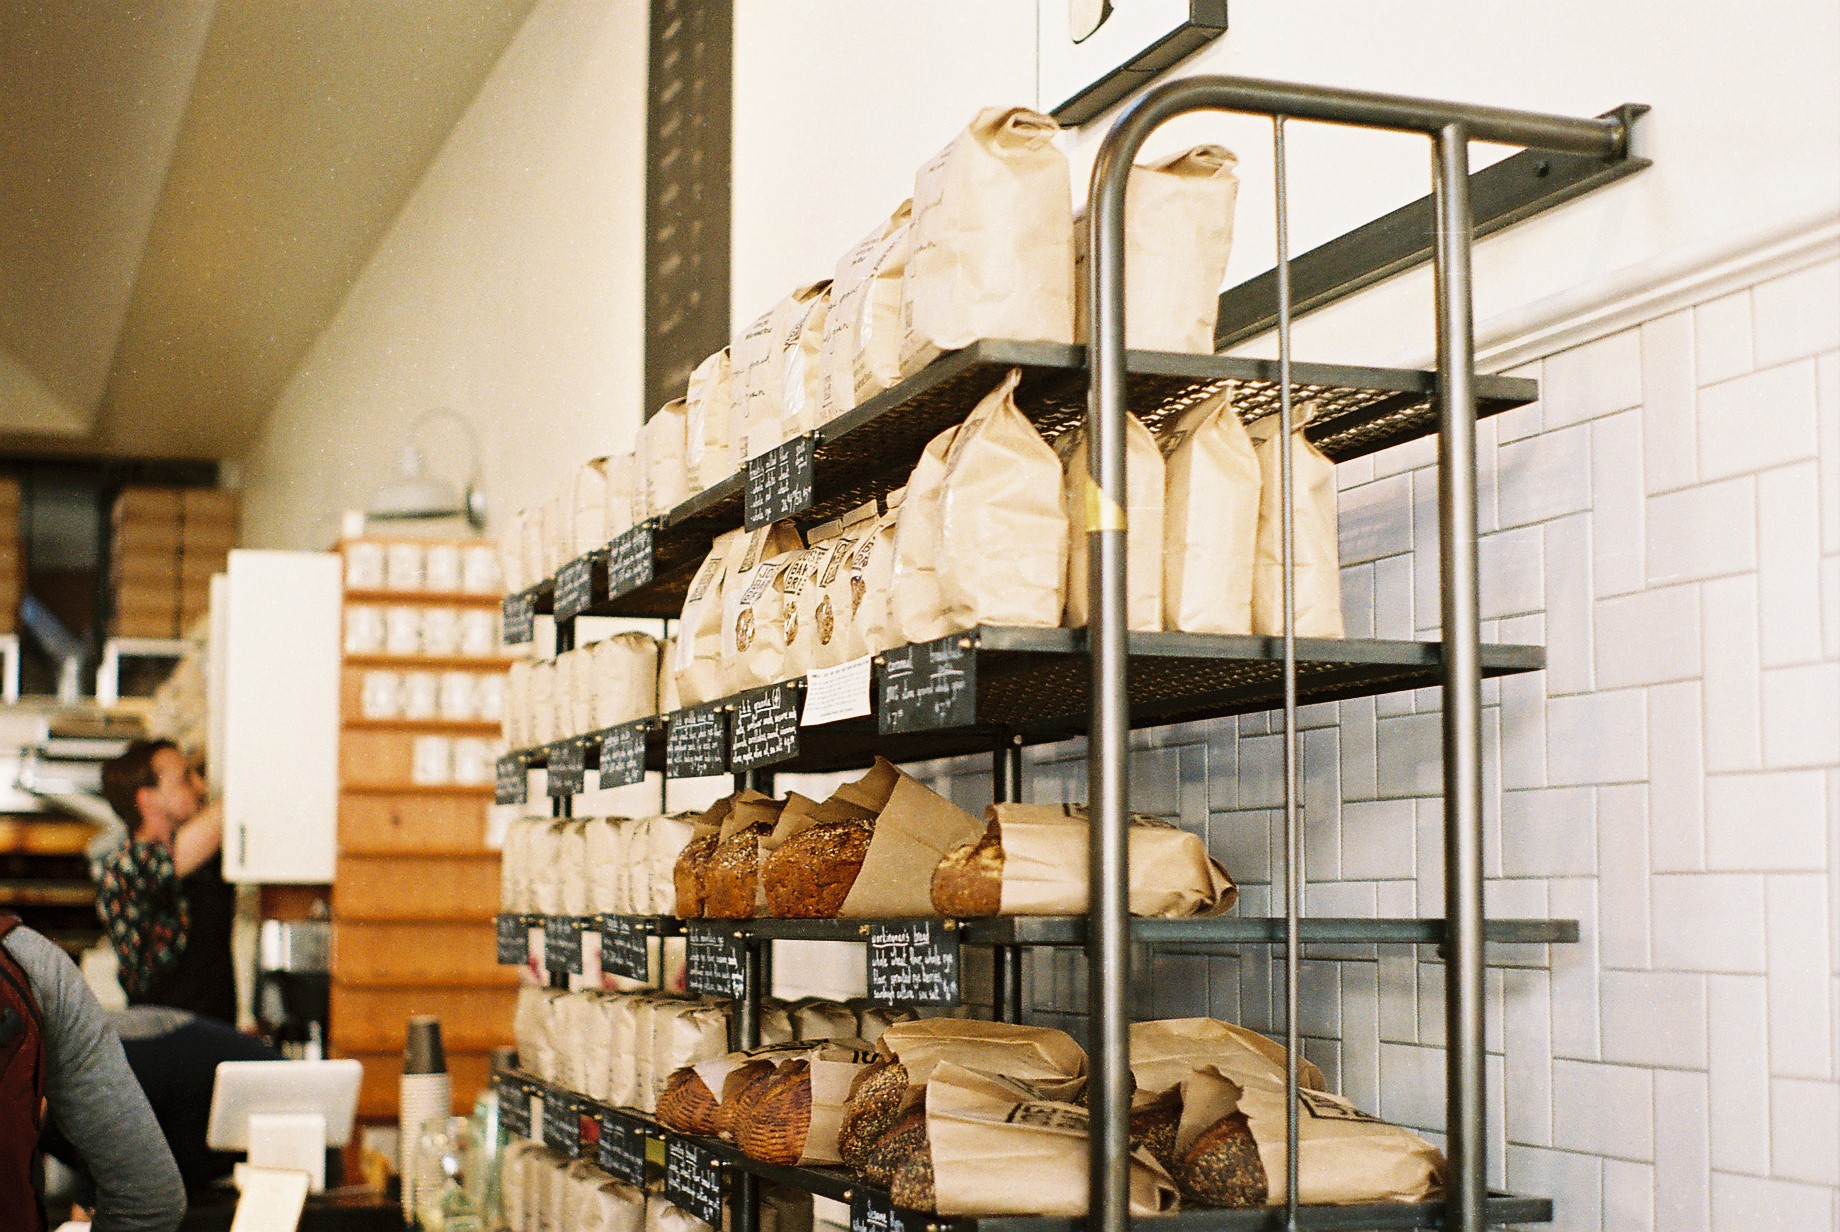 San Francisco The Mill Bakery Analogue Travel Journal